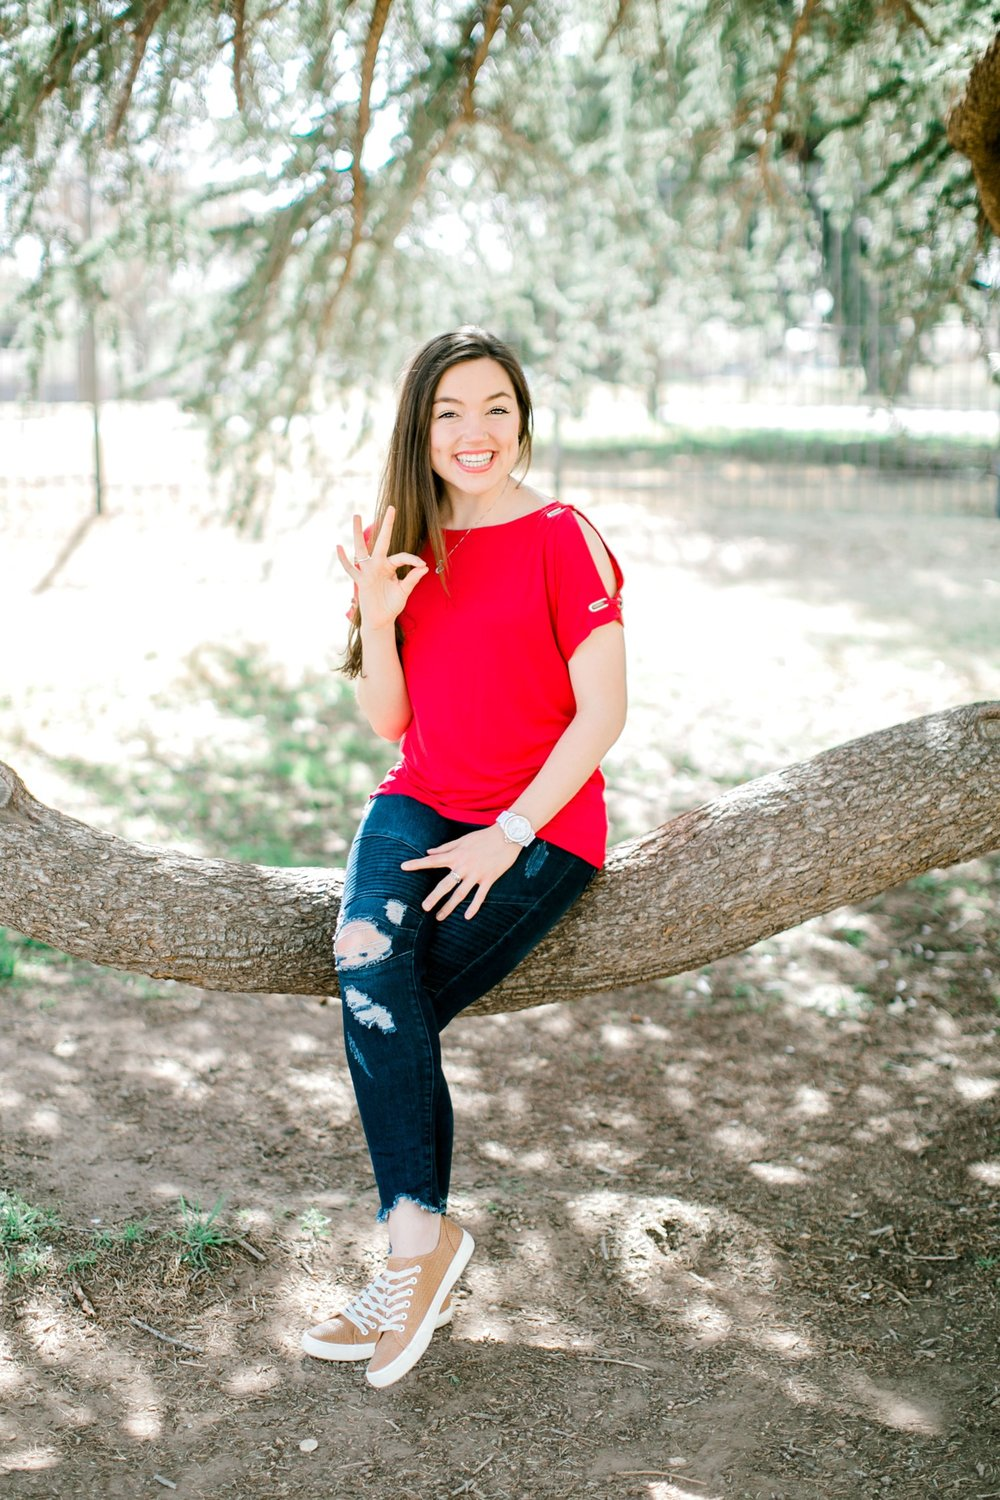 Gracie-Kennedy-Lubbock-Senior-Photographer0001.jpg